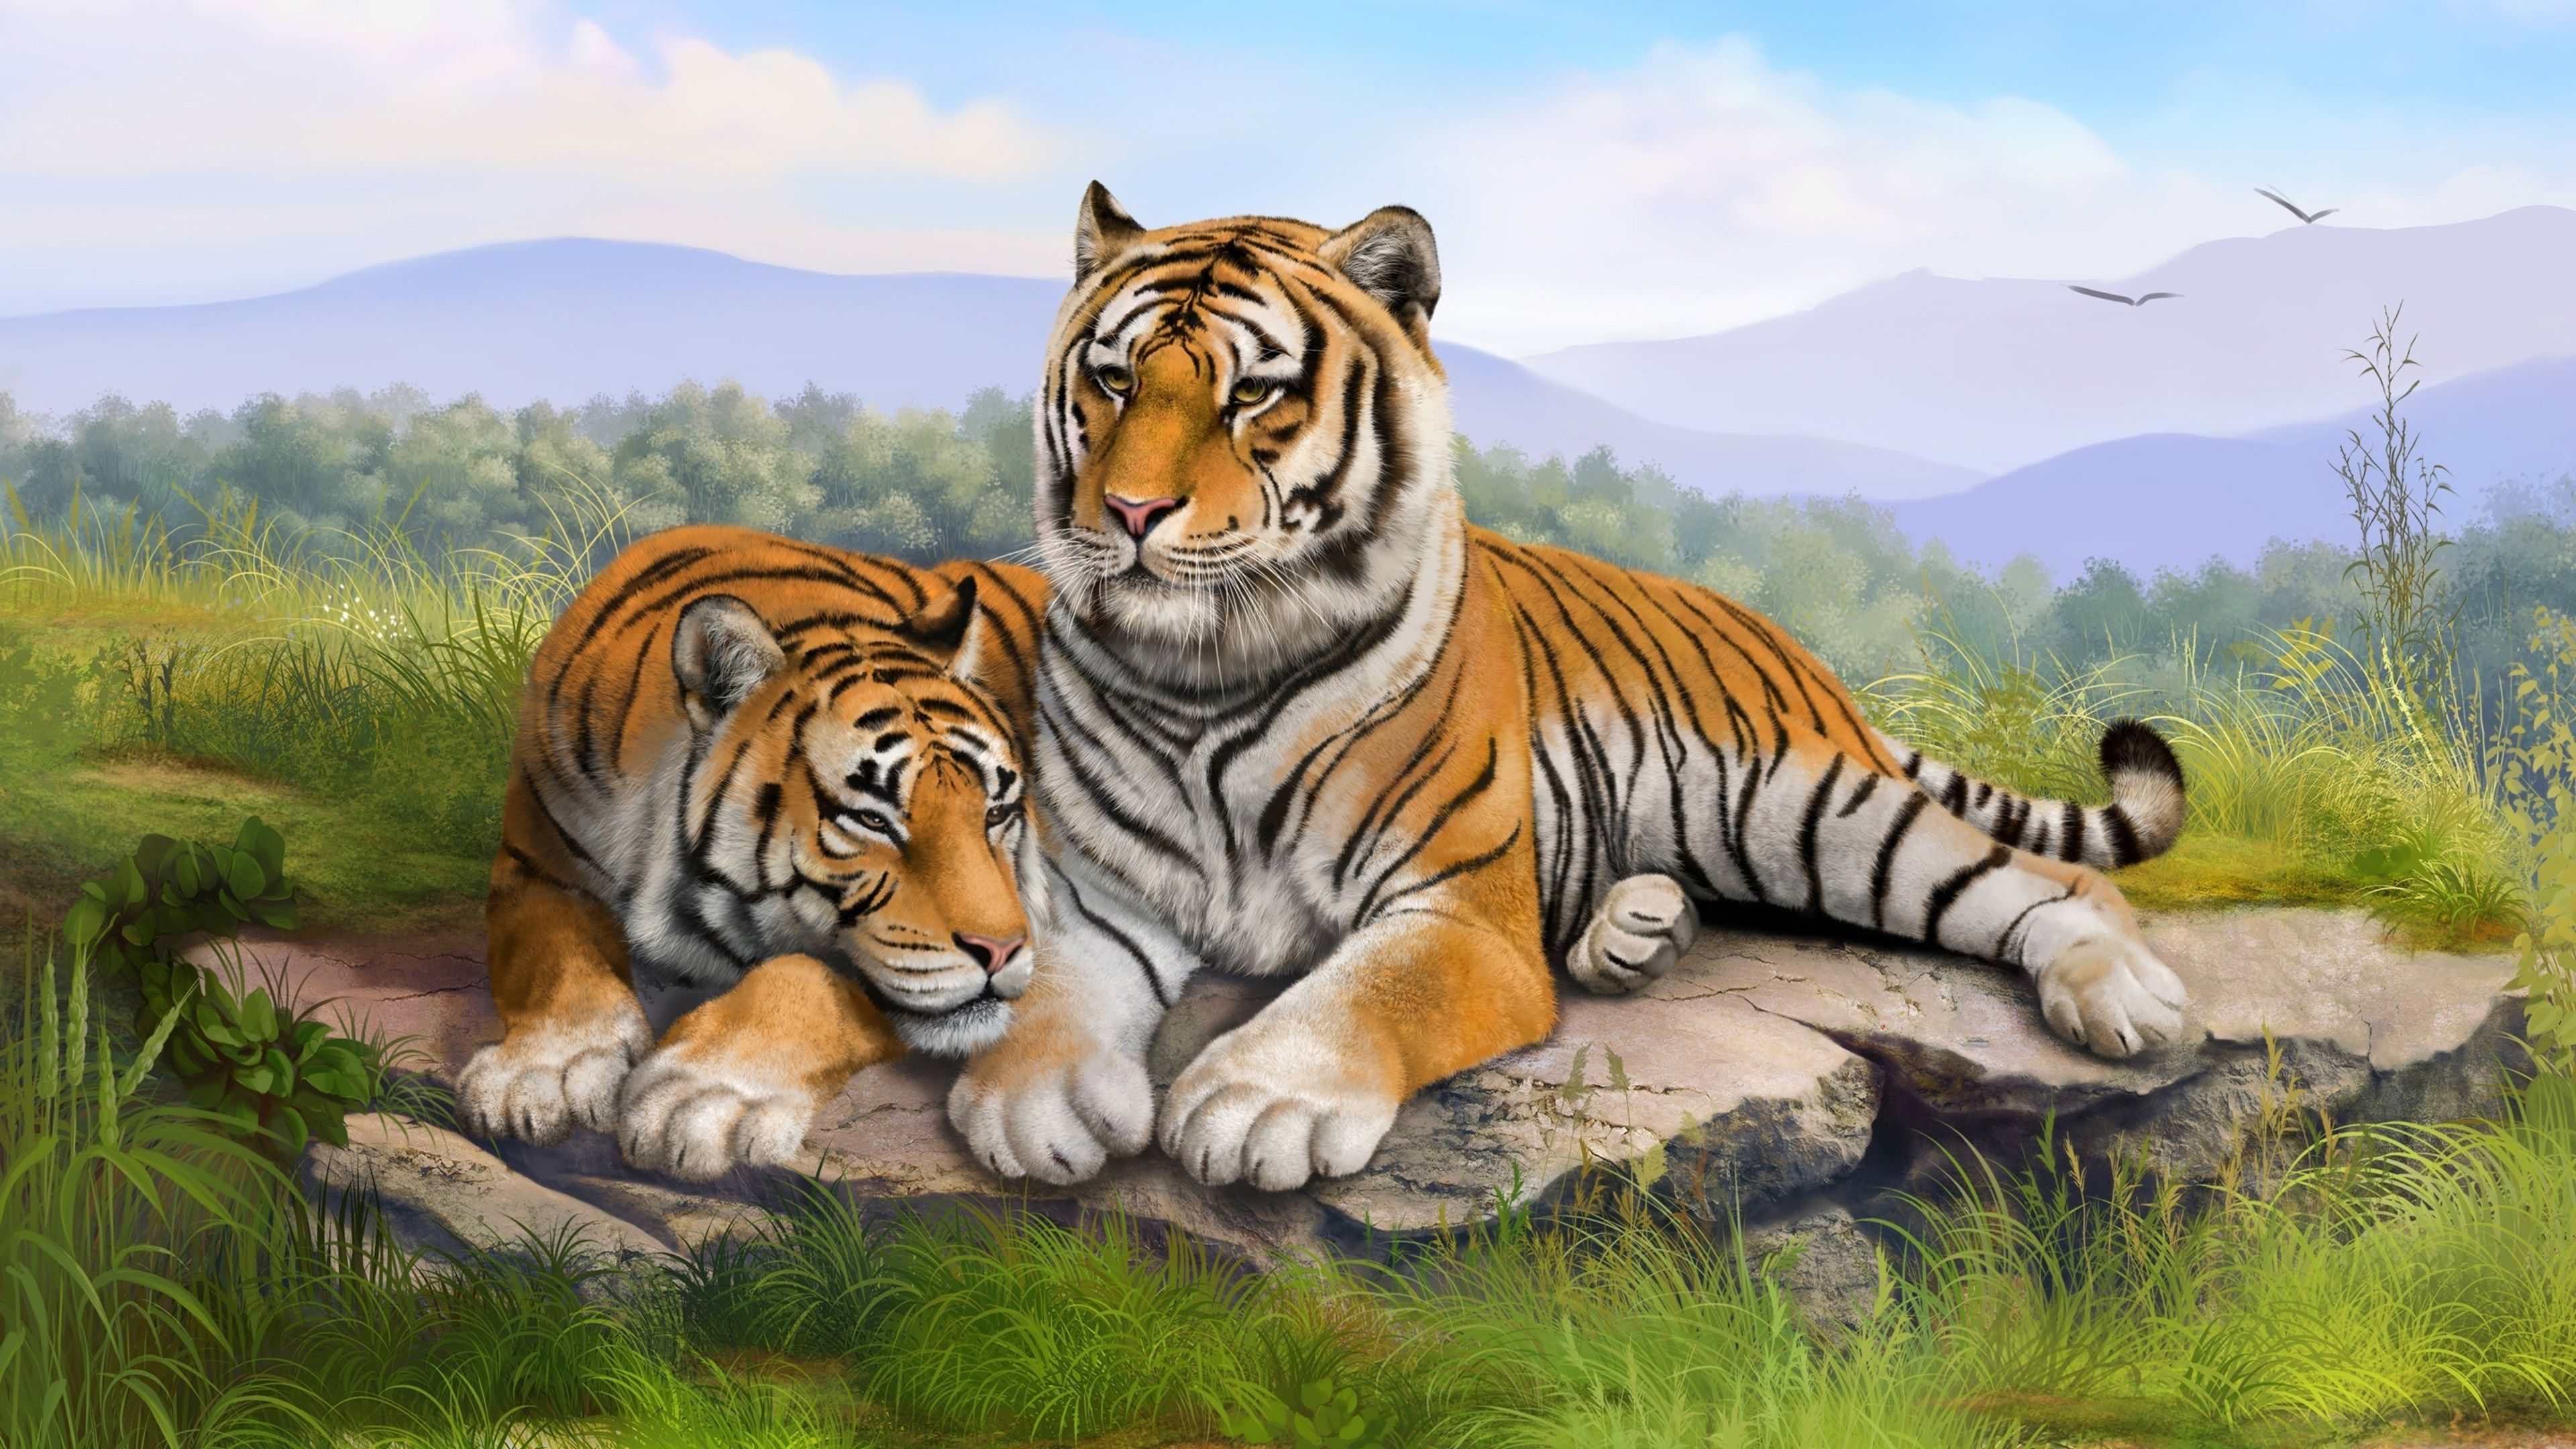 3840x2160 Tigers 4k Desktop Wallpapers Hd Free Download Tiger Art Wall Art Pictures Tiger Wallpaper